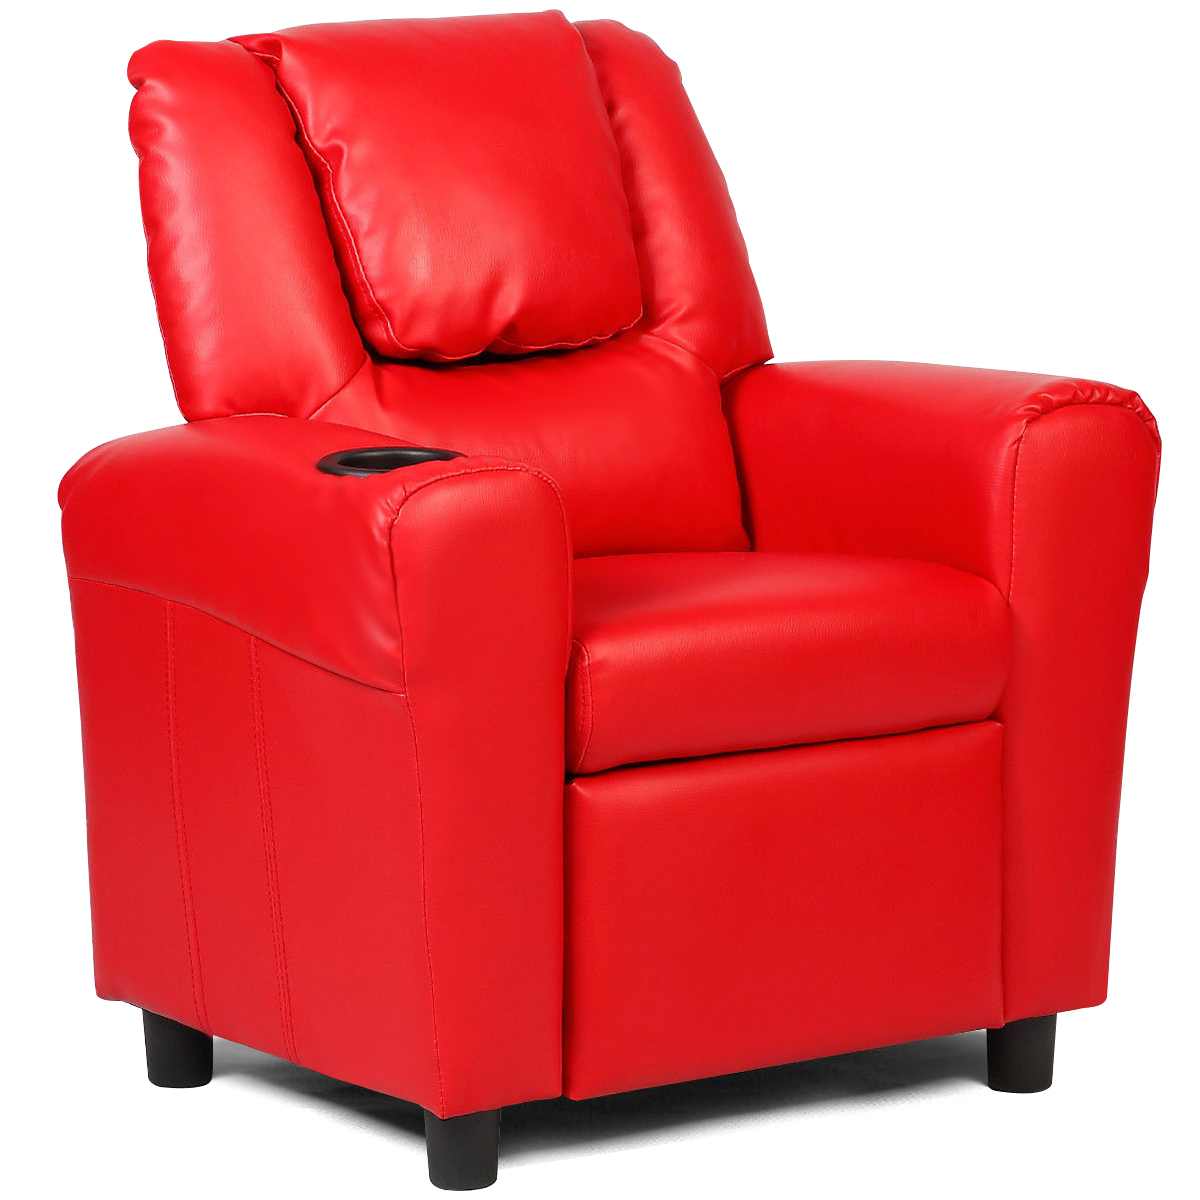 Costway Kids Recliner Armchair Childrenu0027s Furniture Sofa Seat Couch Chair  W/Cup Holder Red